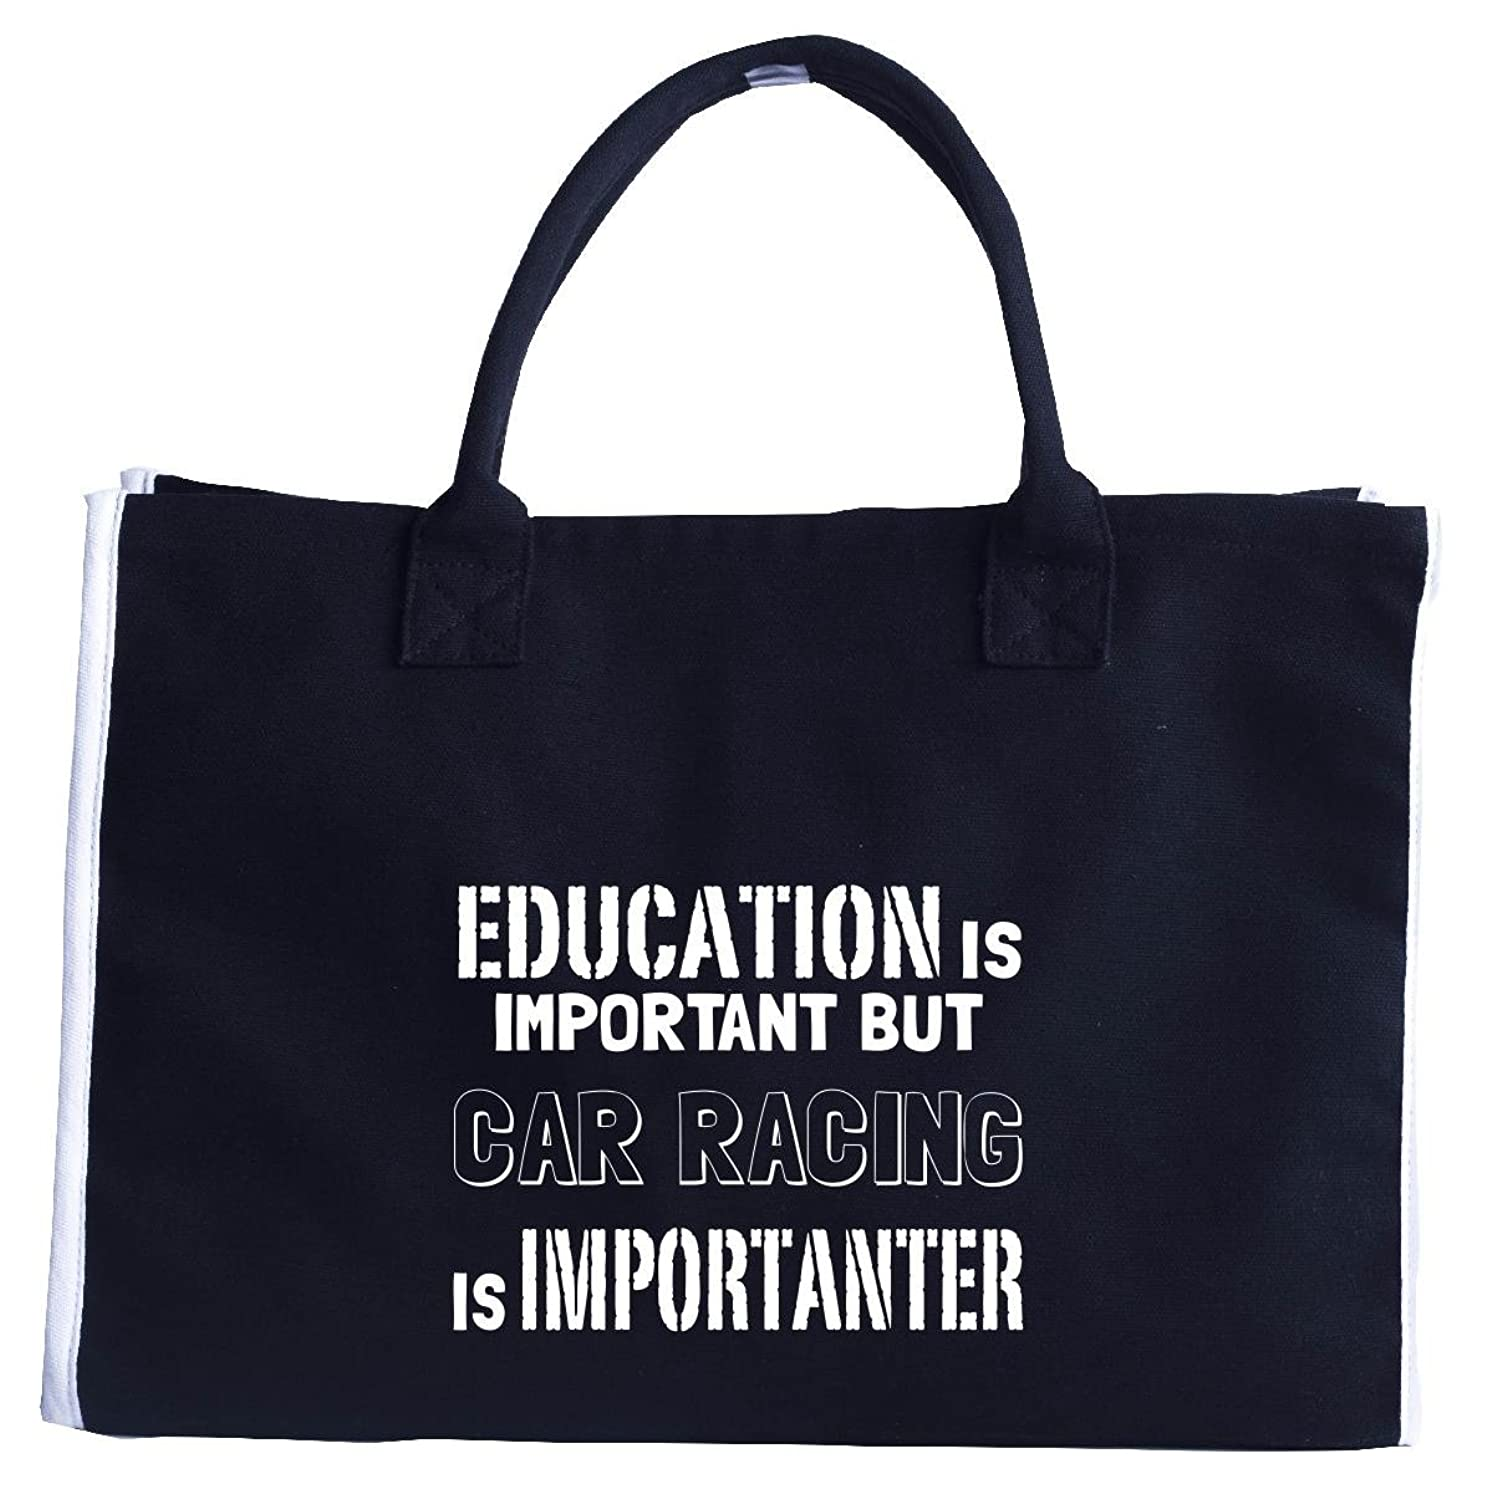 Education Is Important But Car Racing Is Importanter - Tote Bag